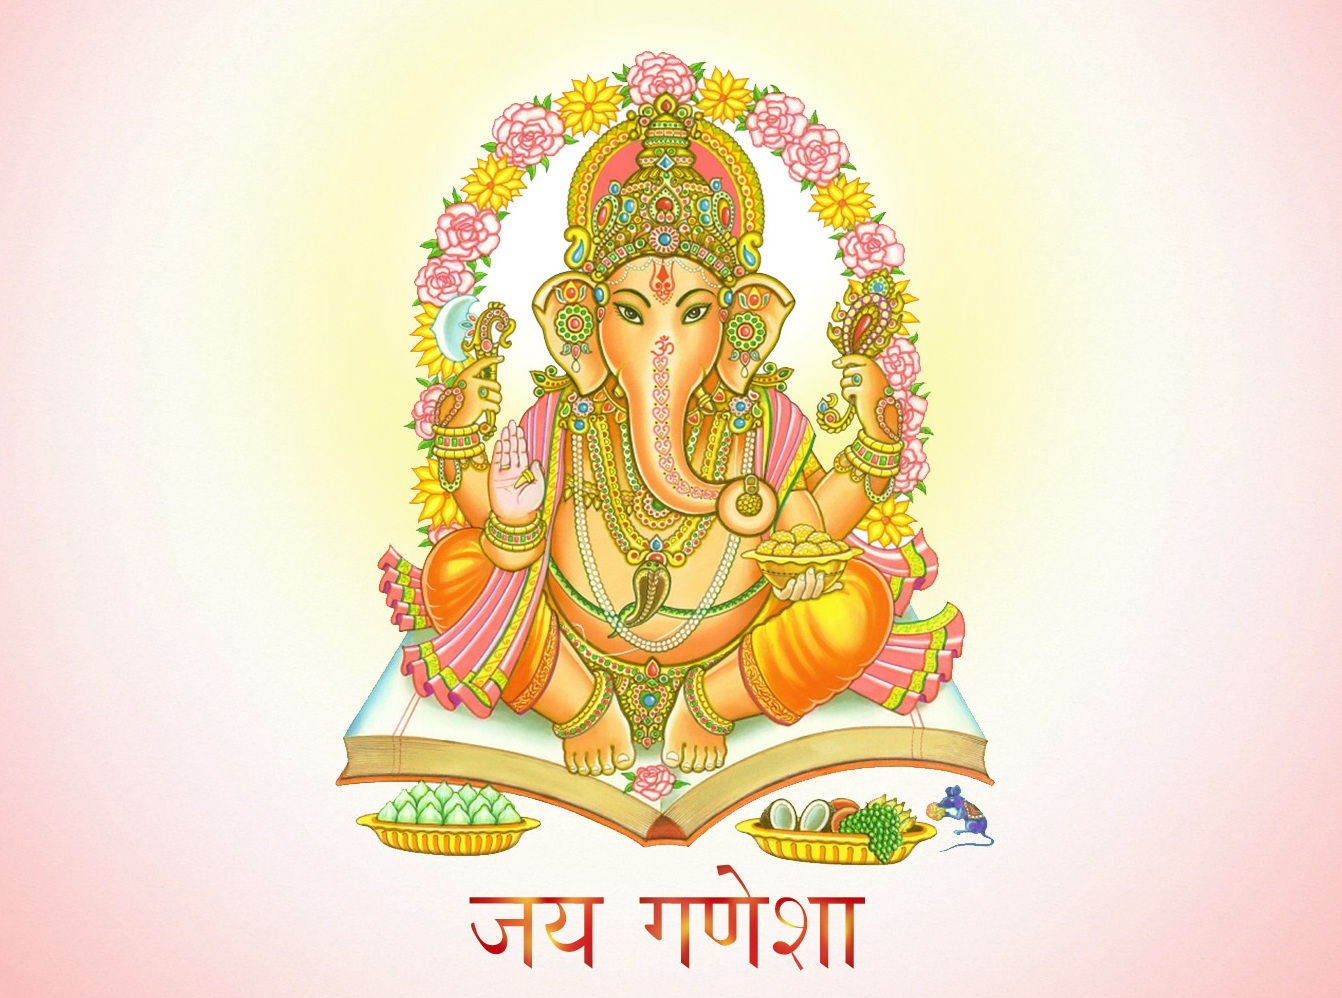 Lord Ganesha Images for Whatsapp DP Wallpapers - Free DownloadLord Ganesha Images for Whatsapp DP Wallpapers - Free Download